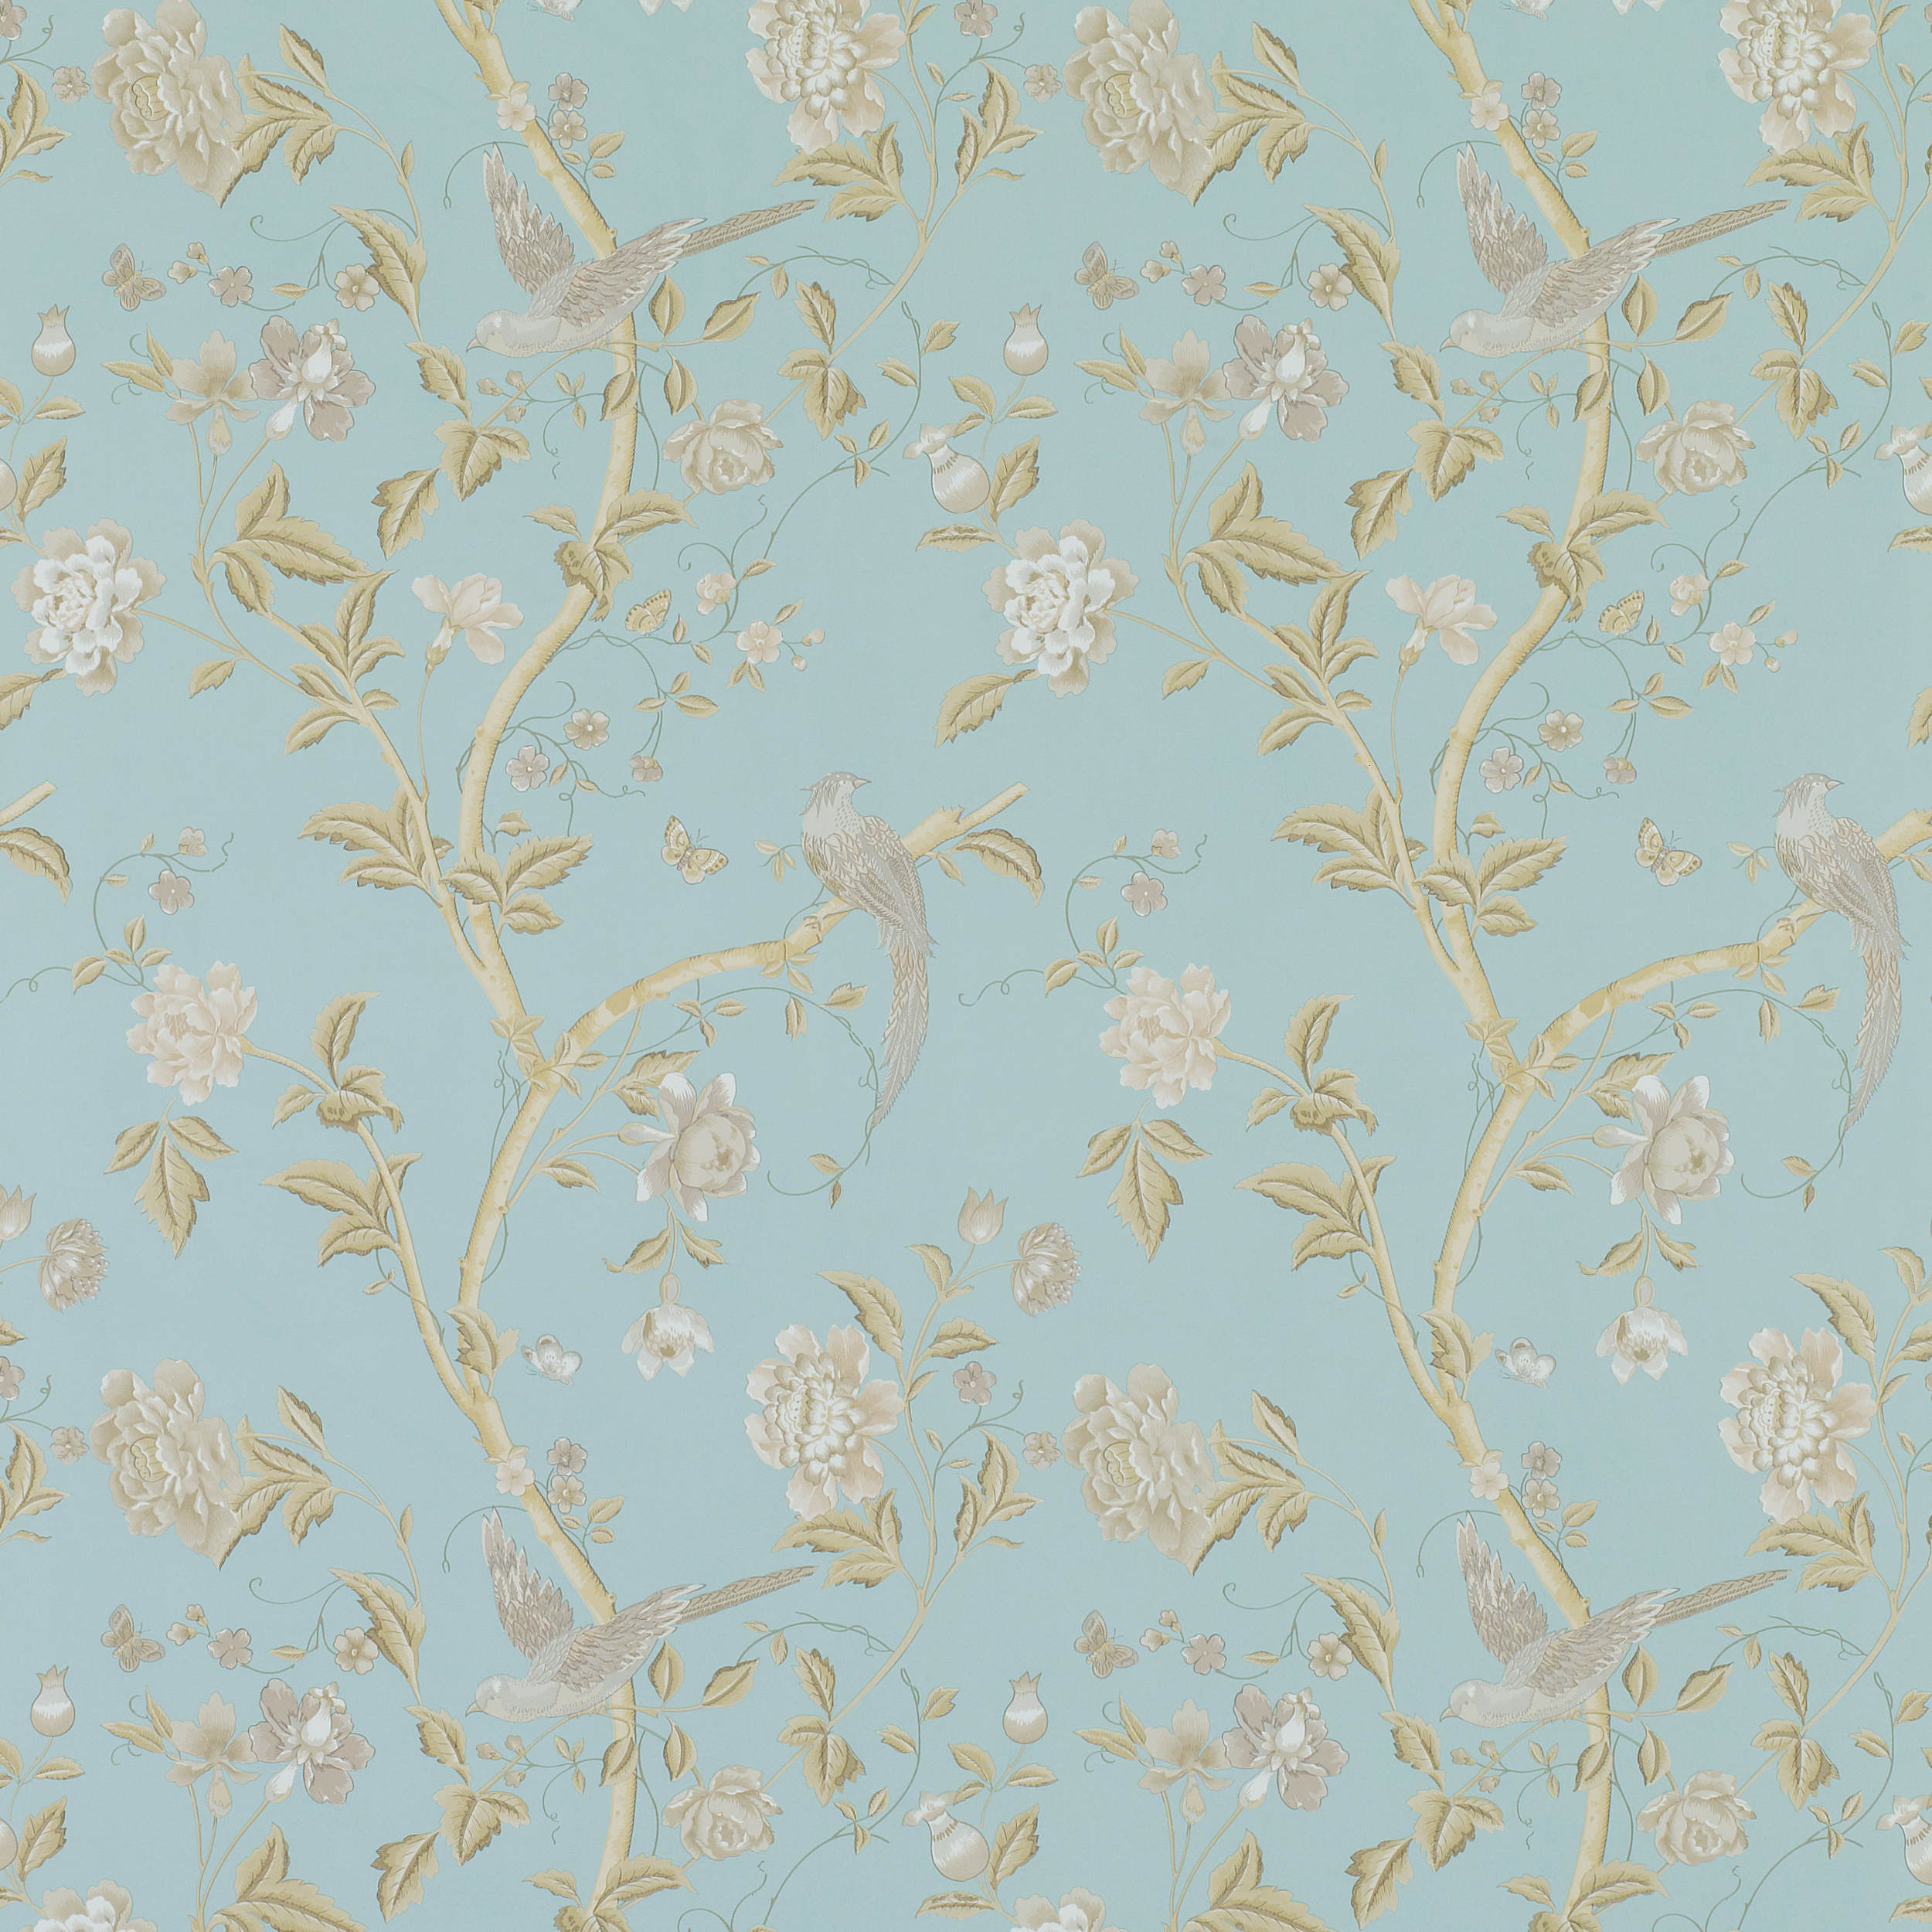 Decorating Wallpaper Summer Palace Powder Bue Floral 2500x2500